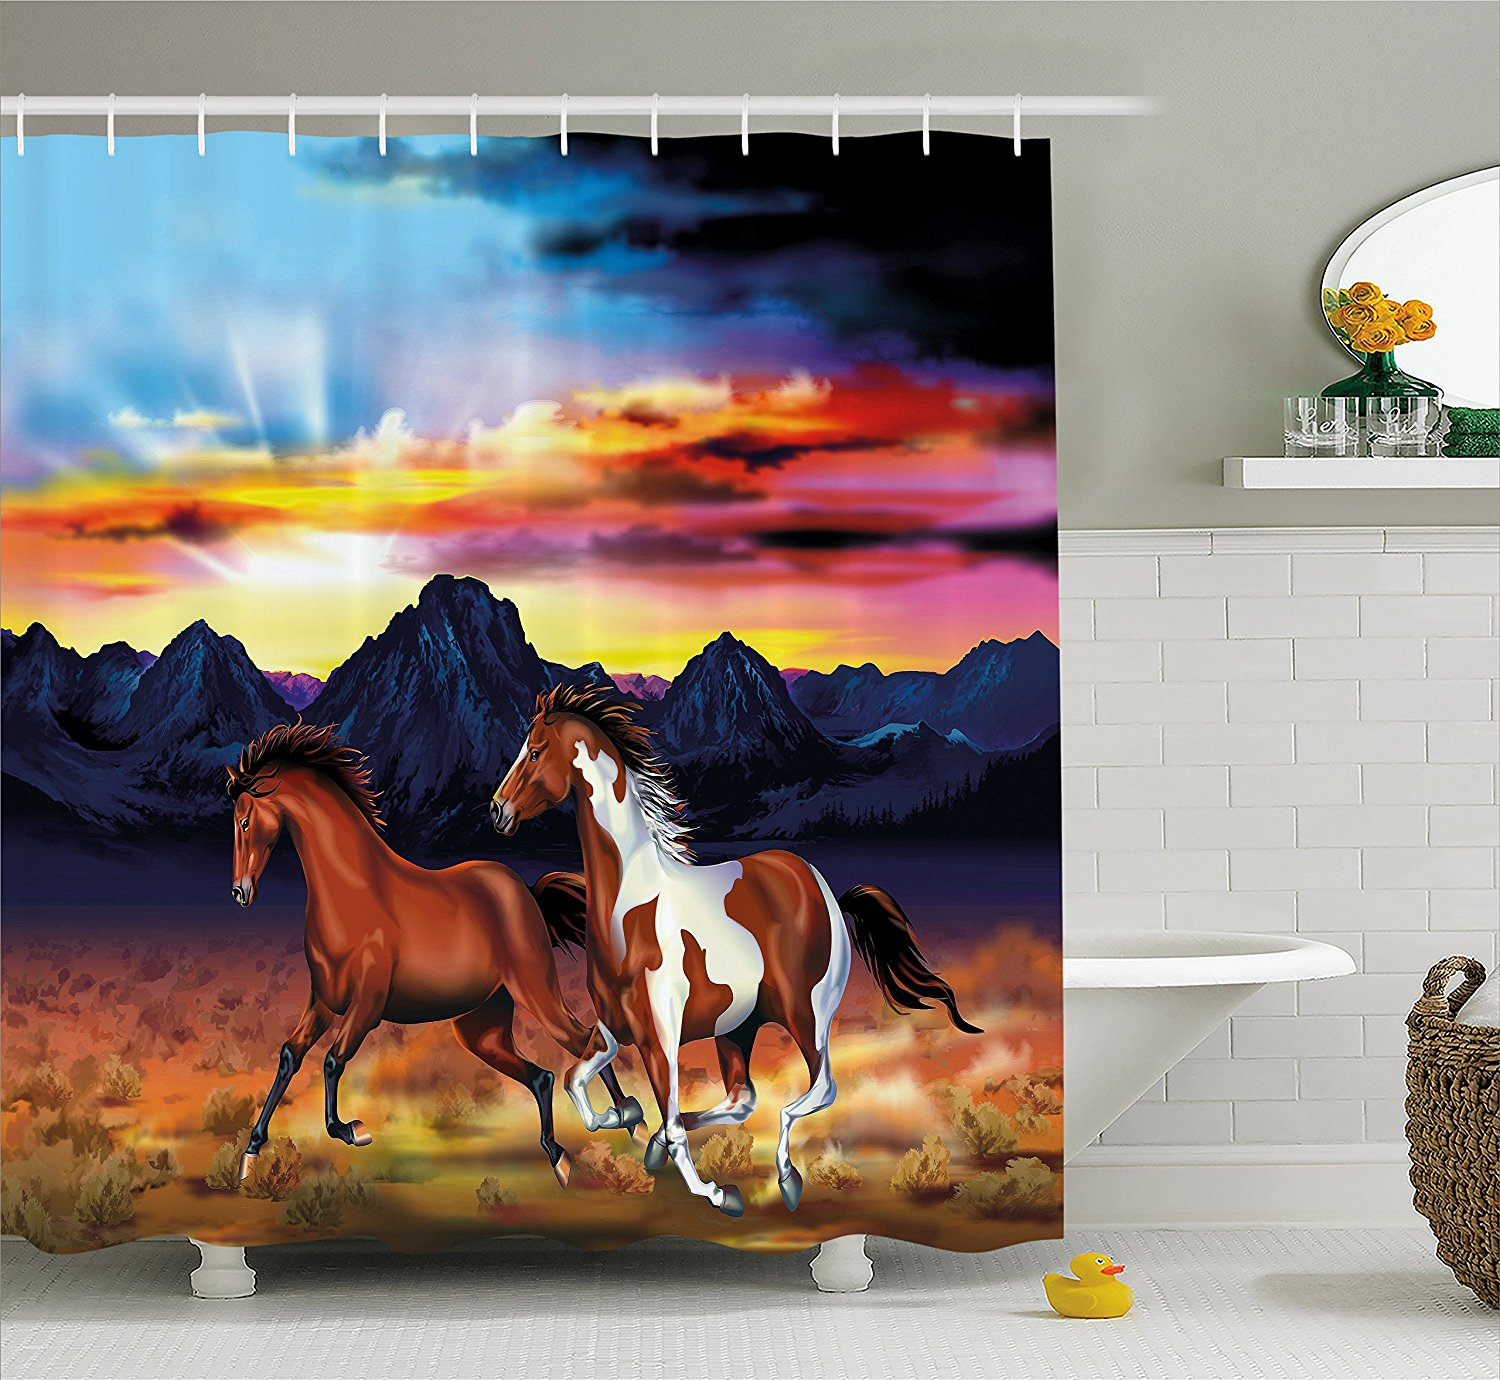 Western Shower Curtain Running Wild Horses at Sunset Artistic Rustic Landscape Colorful Sky Illustration Decor Set with Hooks in Shower Curtains from Home